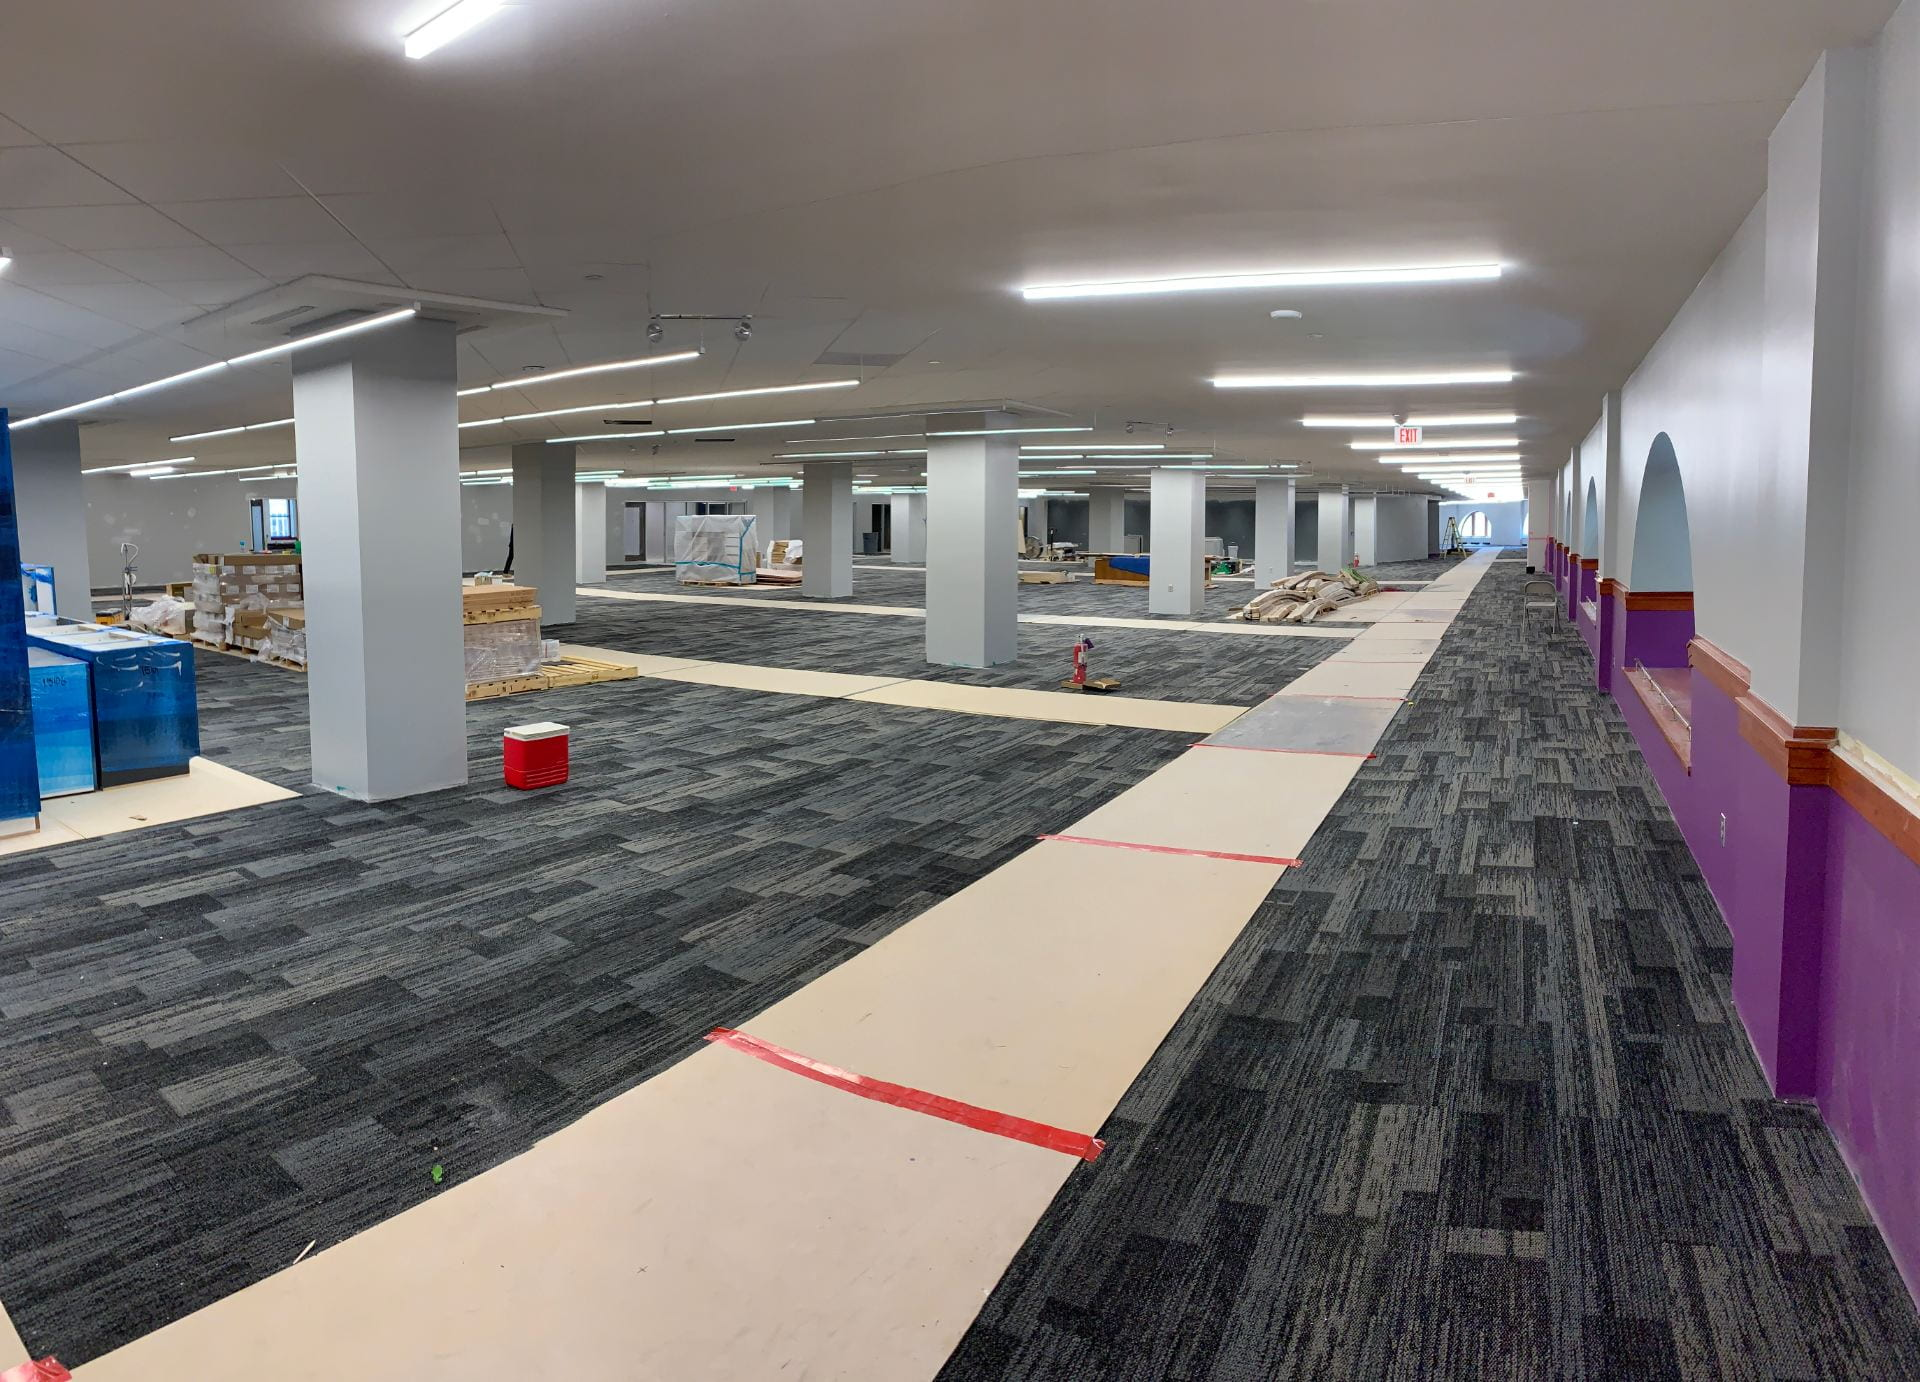 The third floor is now carpeted, with board walkways for crew members.